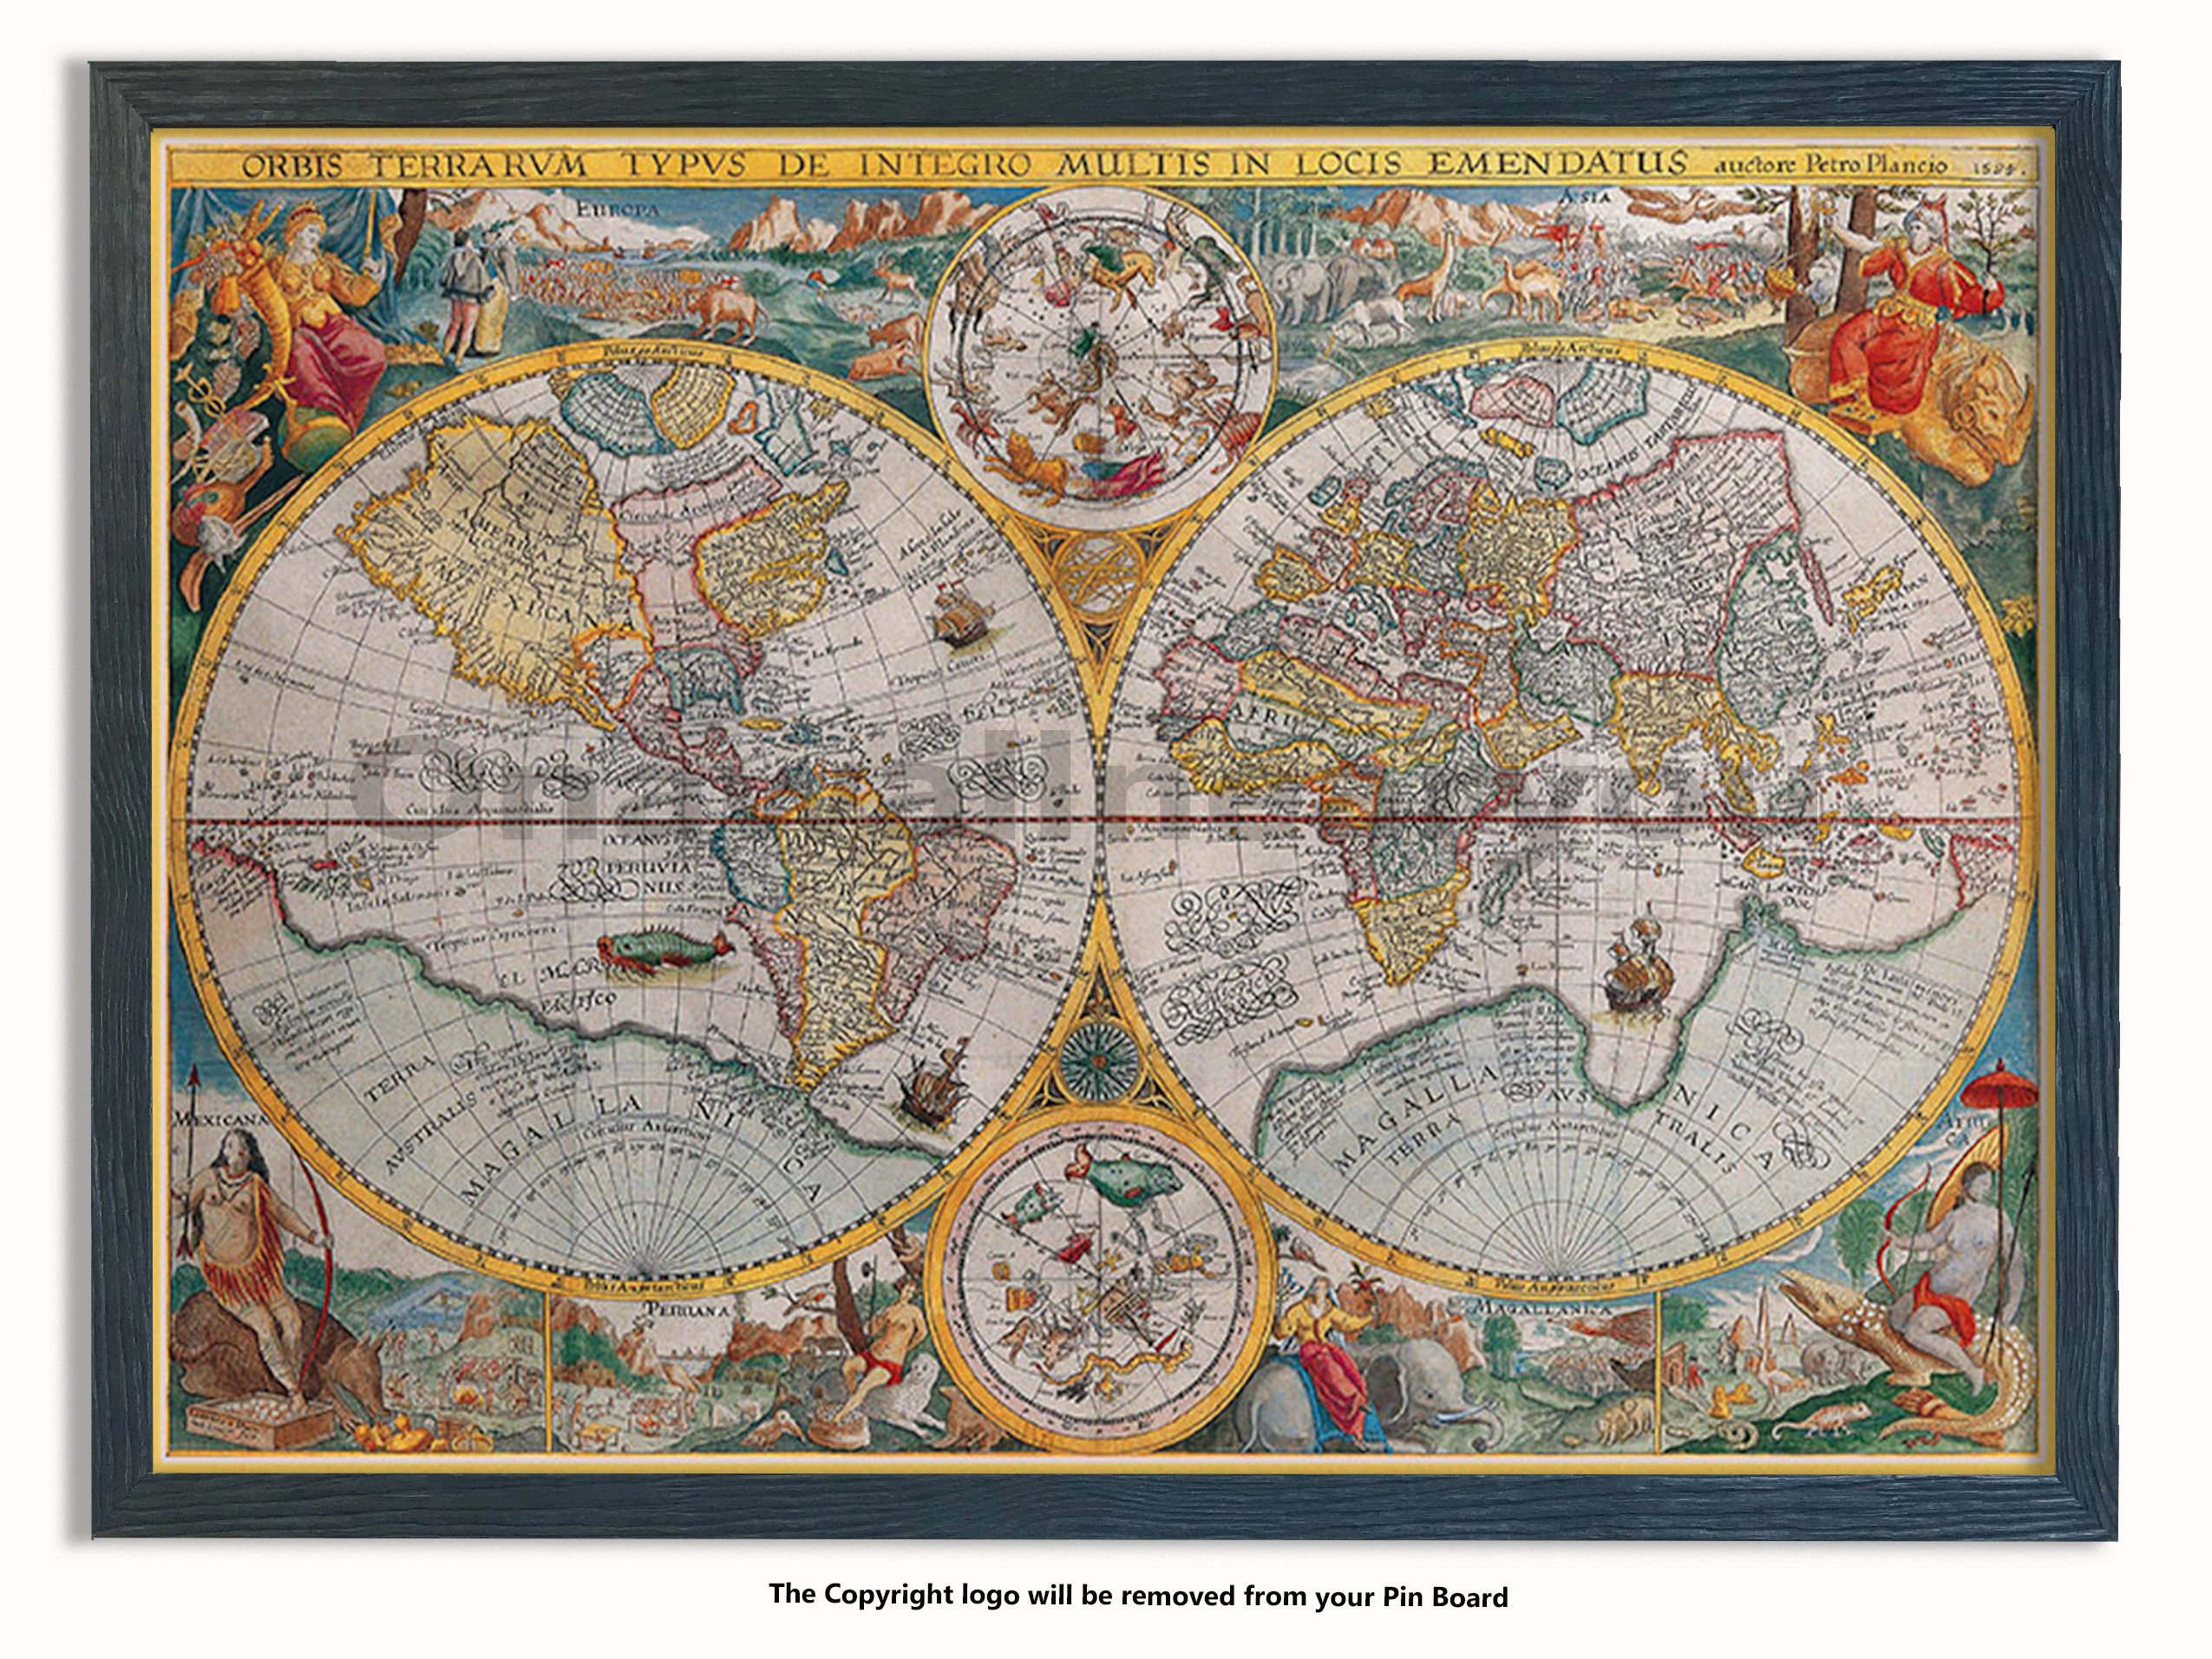 Laminated Posters Framed - Vintage Style World Map - 16th Century - Push Pin Memo Notice Board - Black Driftwood Effect - Matt Finish - Measures 96.5 x 66 cms (38 x 26 Inches - Approx)